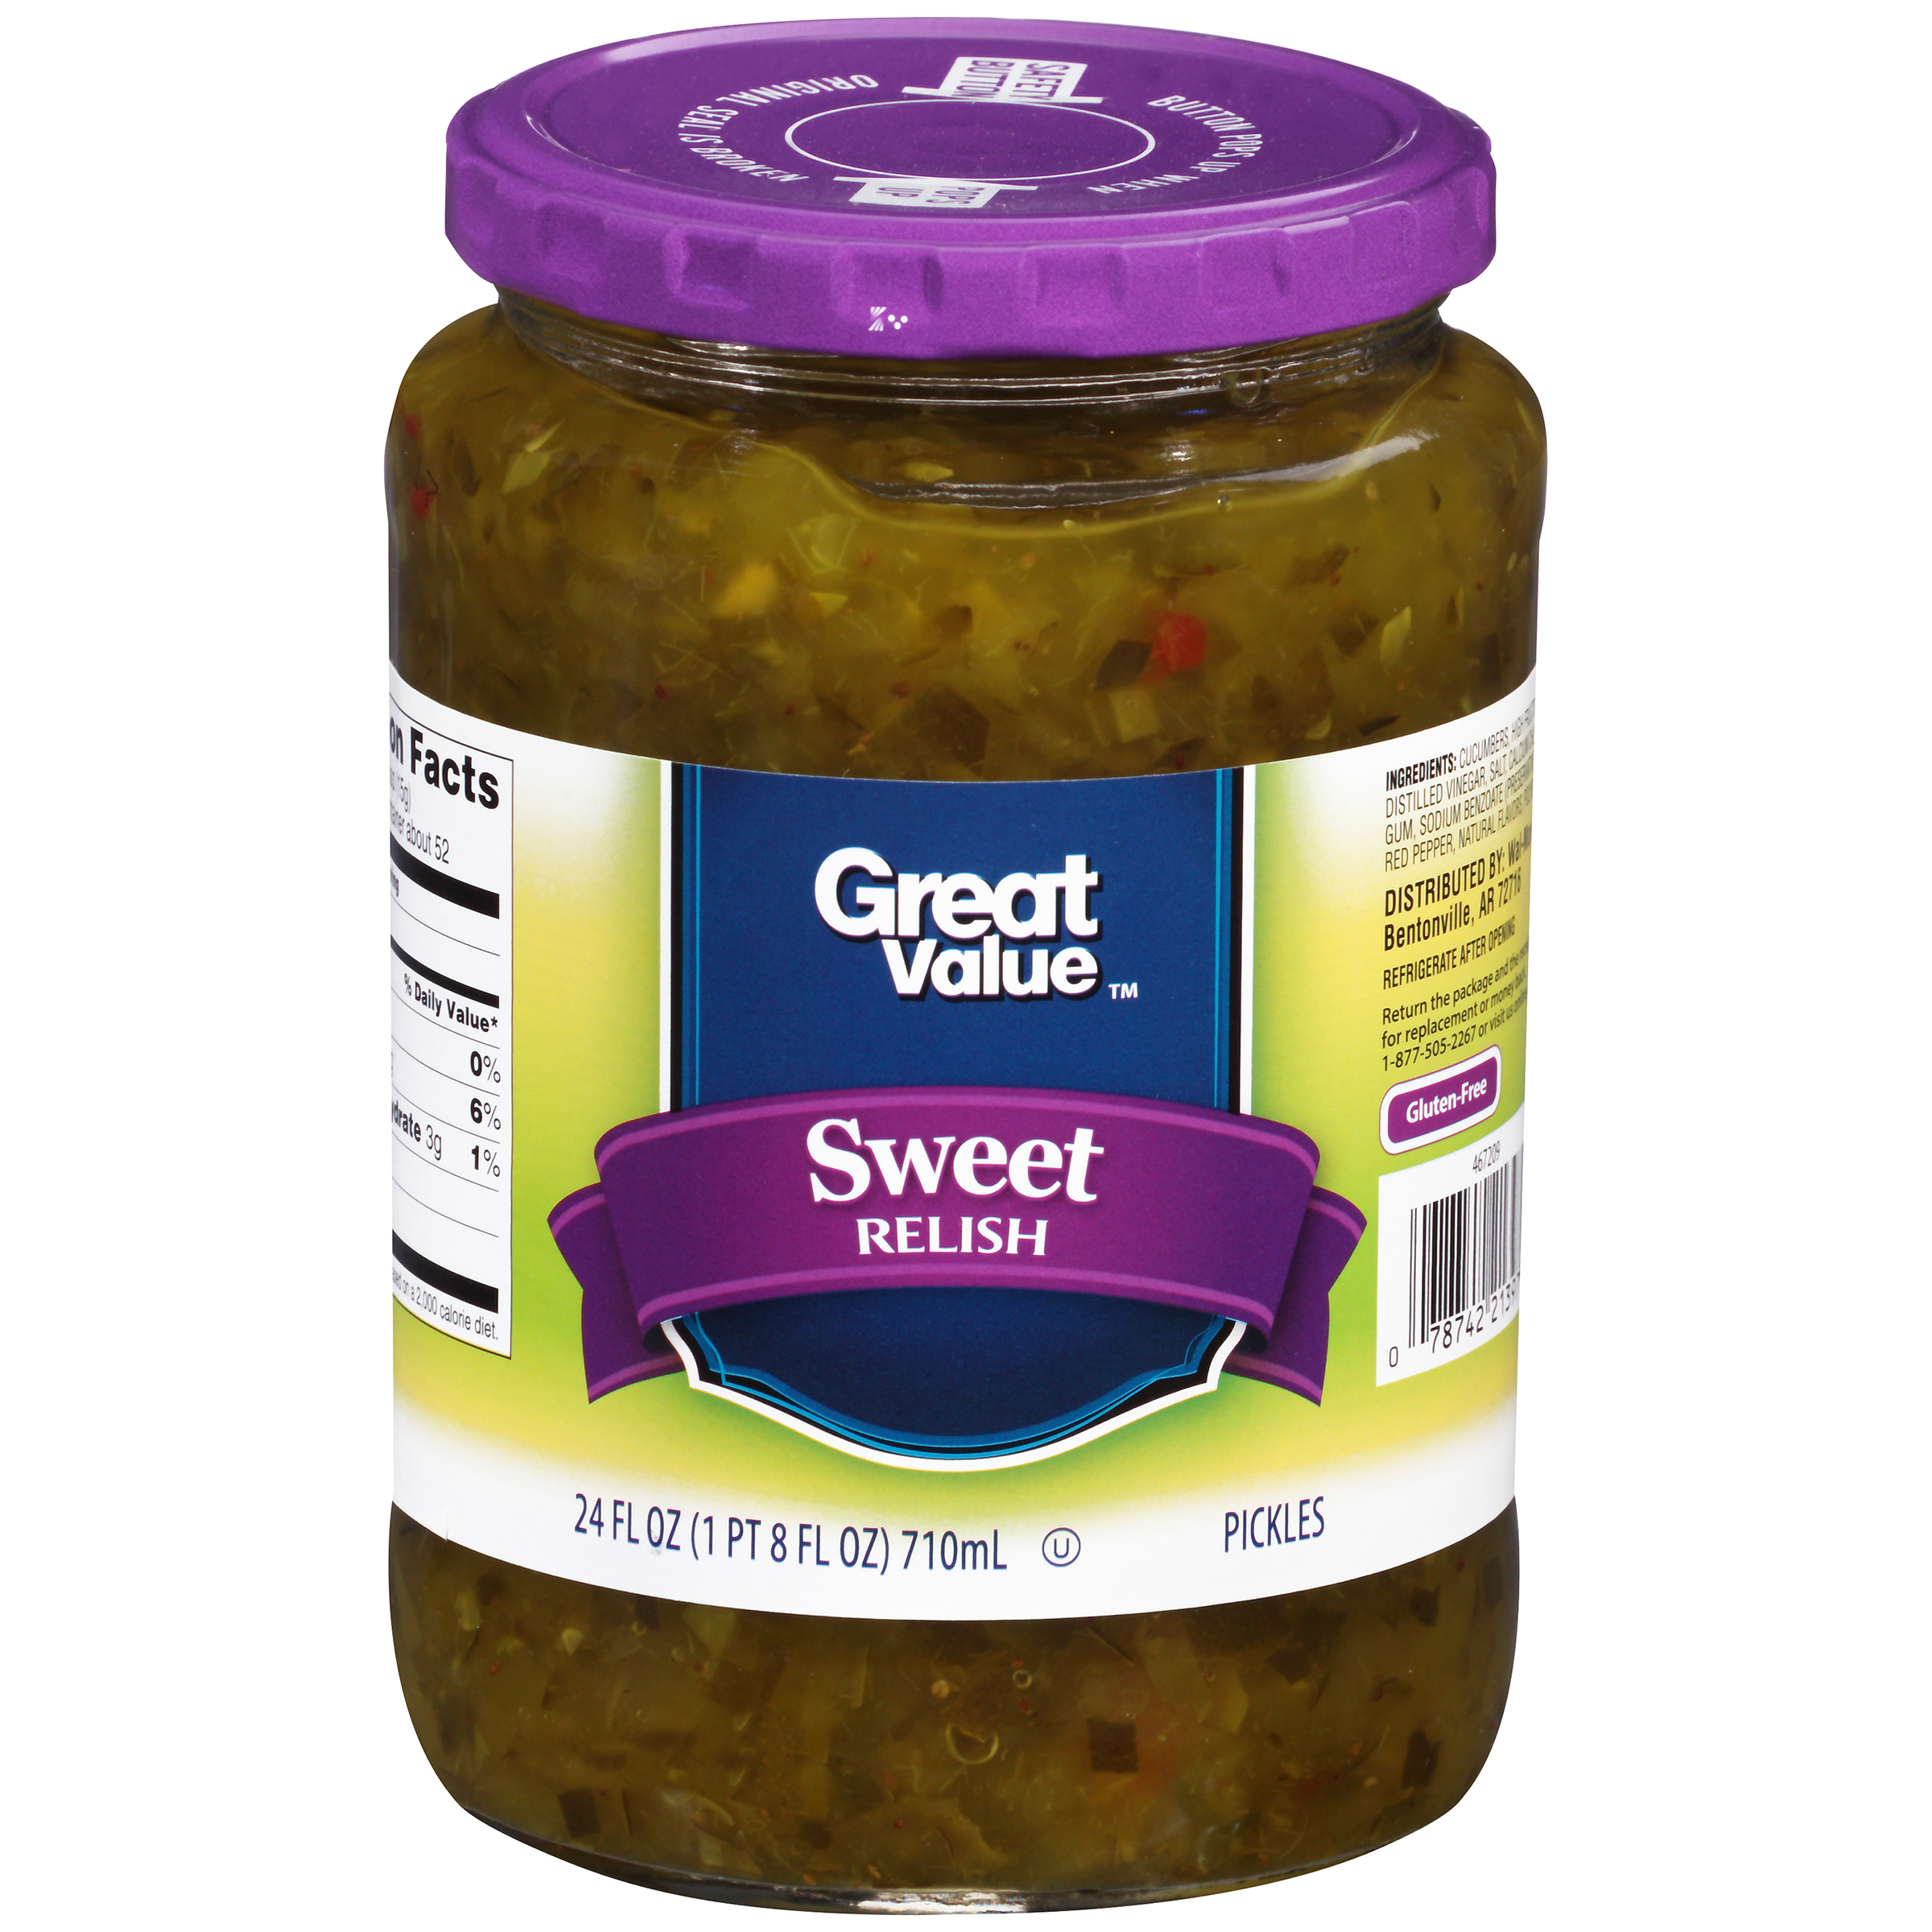 Great Value™ Sweet Relish 24 fl. oz. Jar